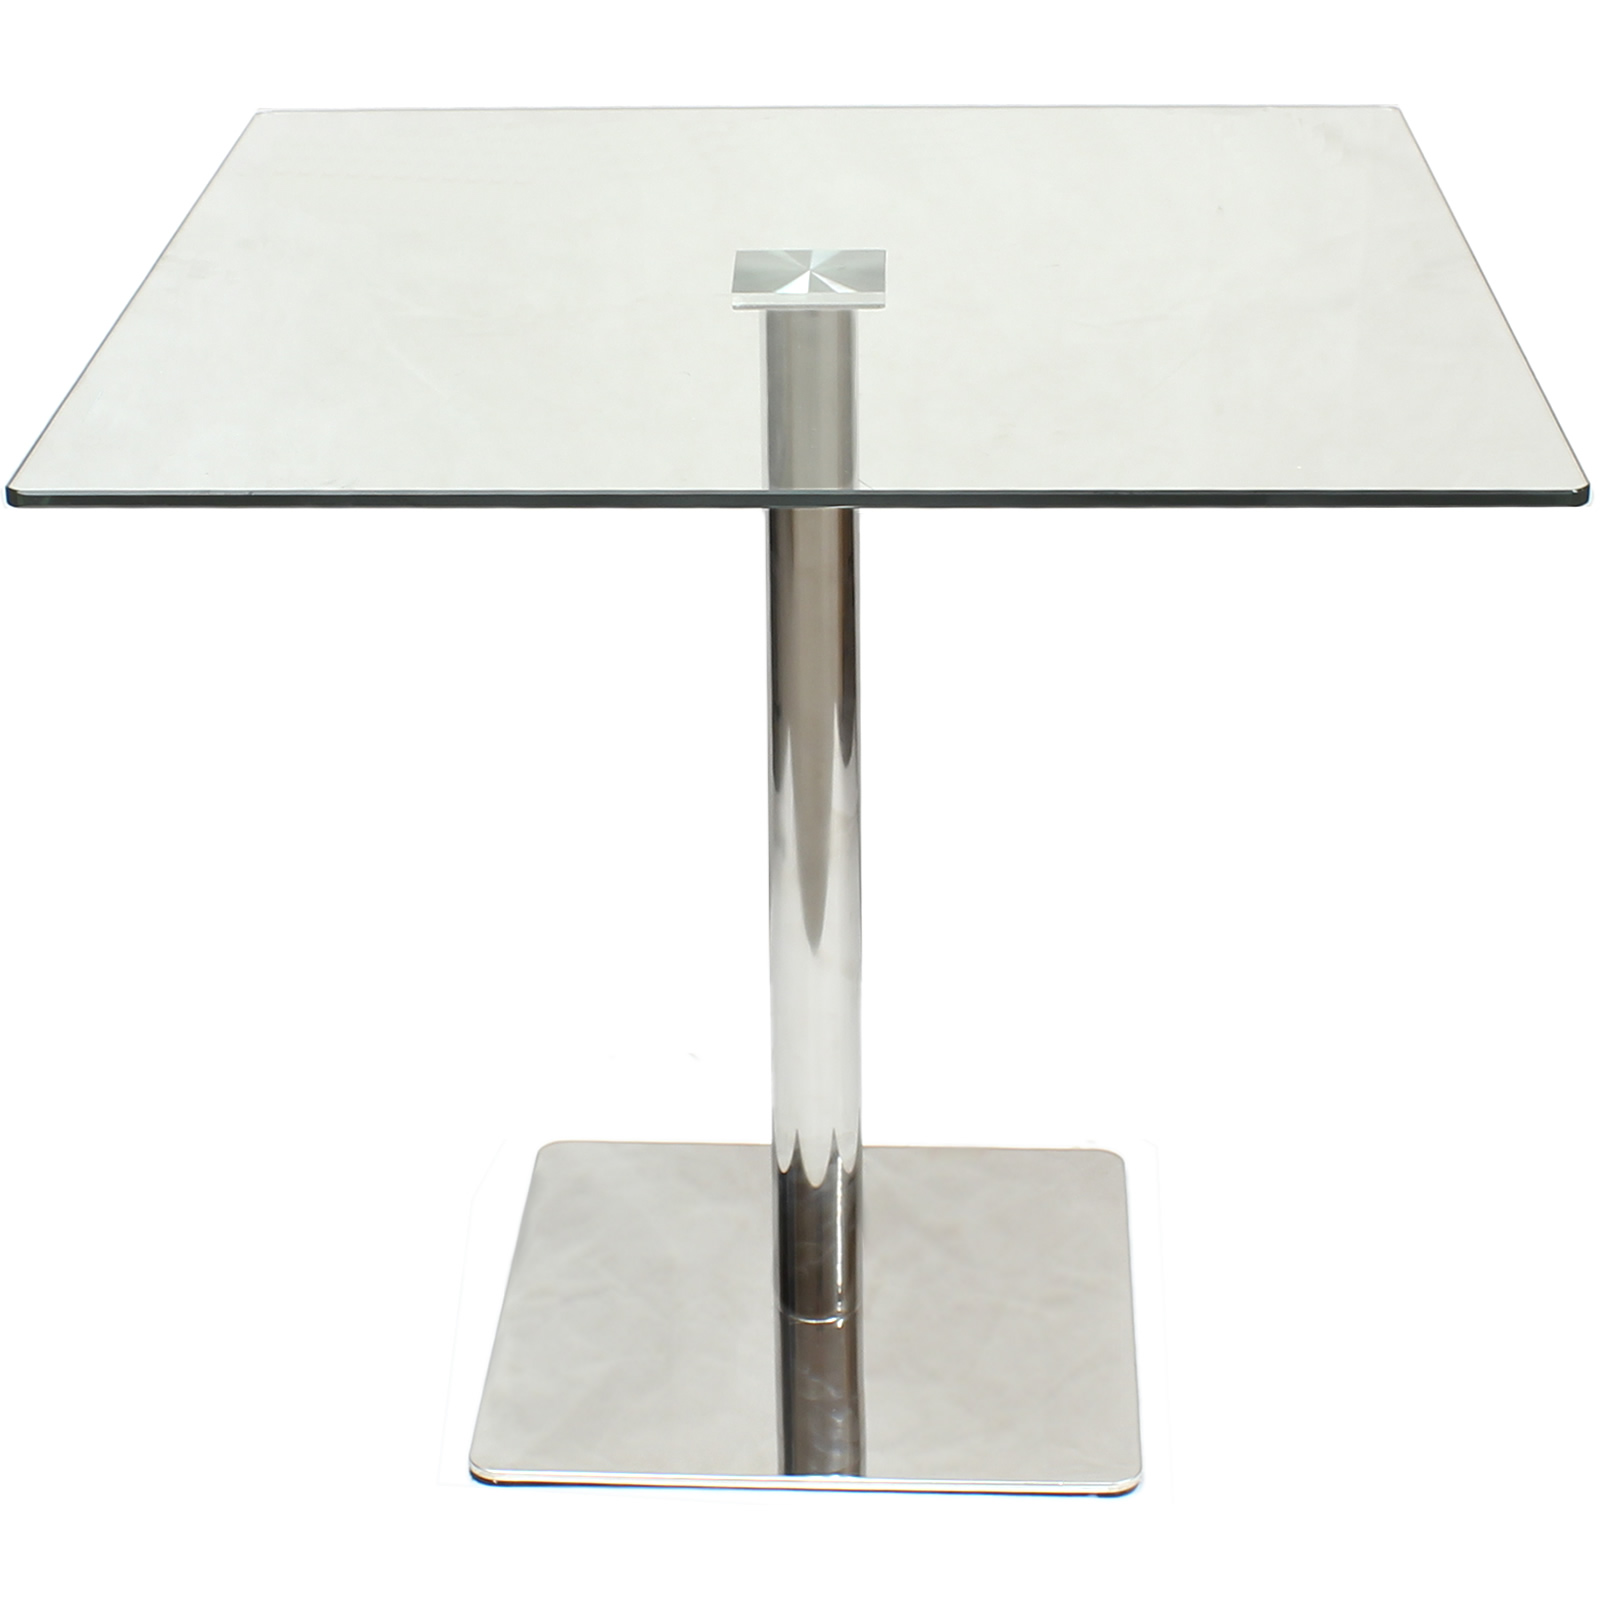 LARGE SQUARE CLEAR GLASS DININGBISTRO TABLE BARCAFE STYLEBREAKFASTKITCHEN 5051990995215 EBay